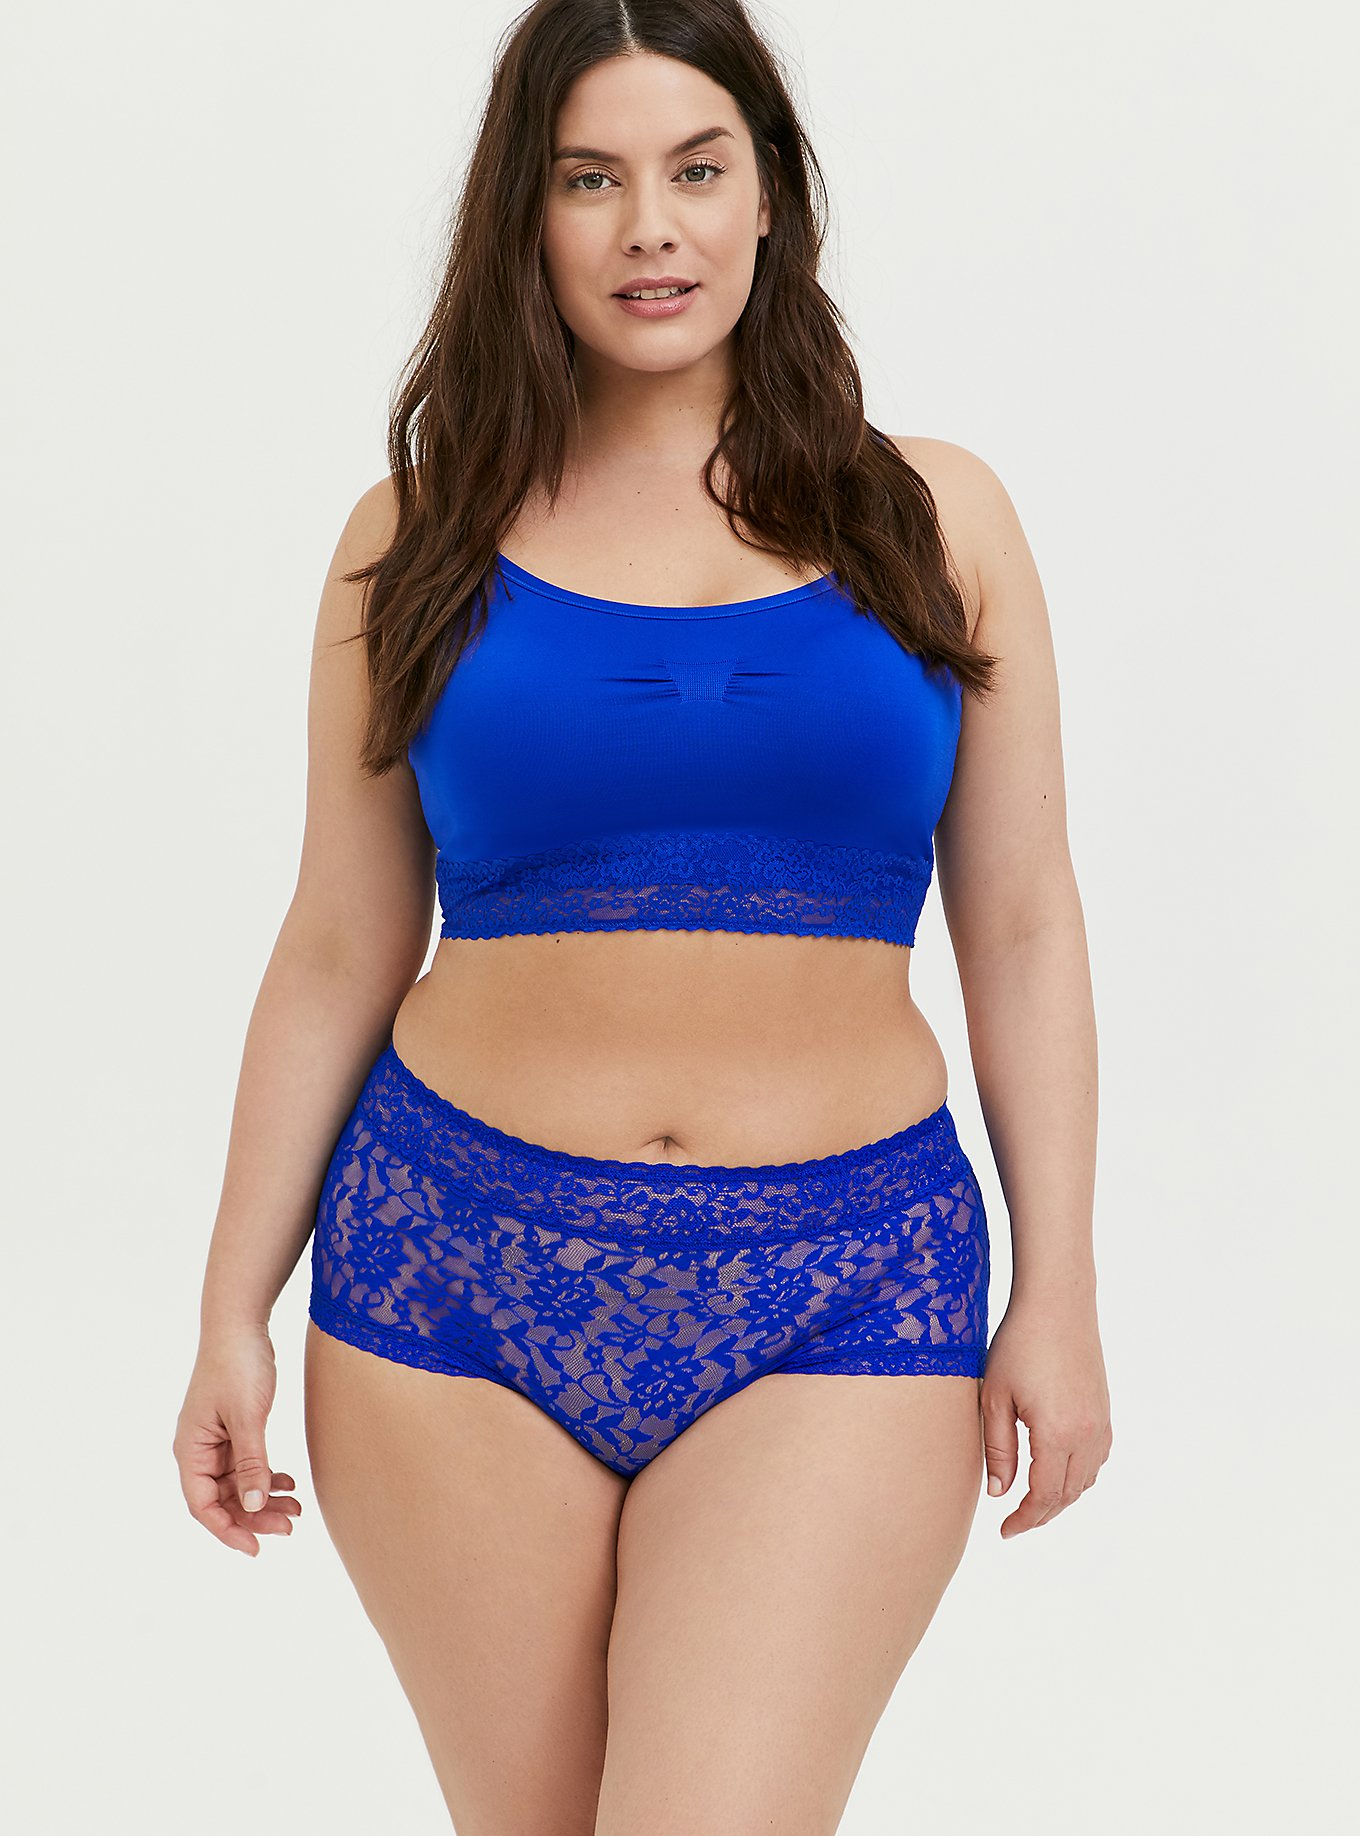 Plus Size Seamless Lightly Padded Bralette and Brief Panty, , hi-res